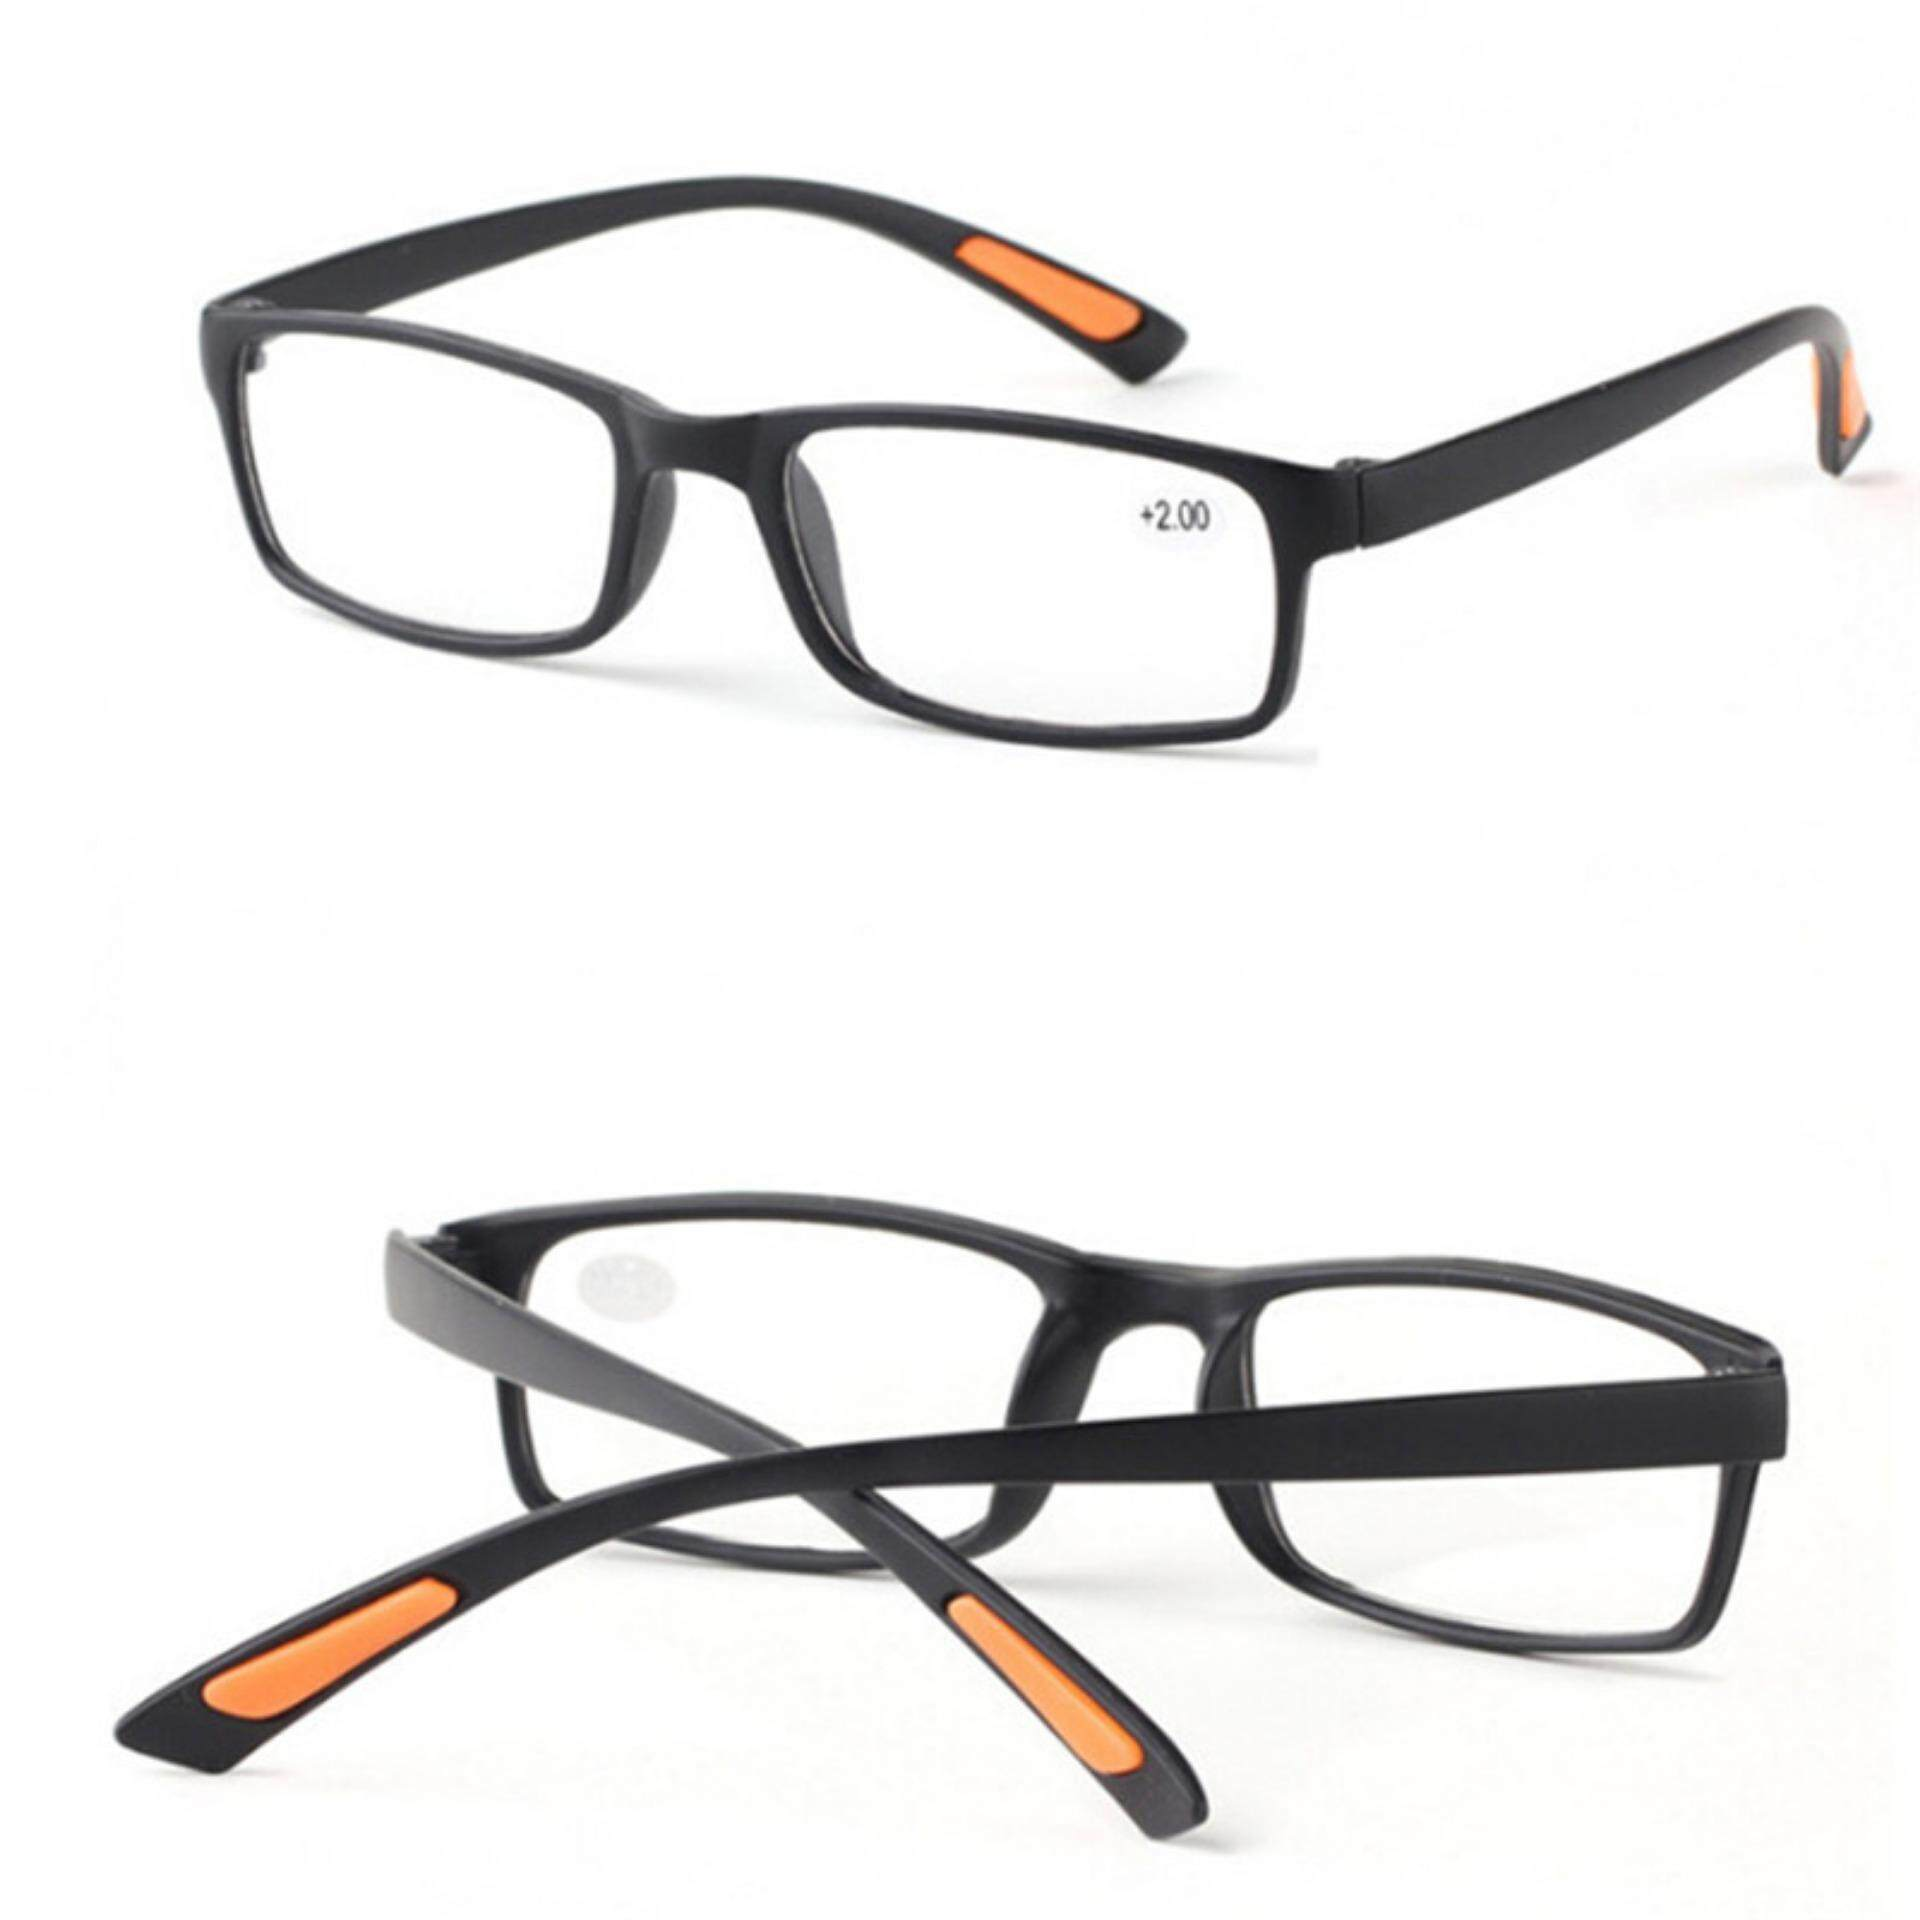 Retro Square Frame No Line Bifocal Progressive Clear Lens Reading Glasses Unisex Black 350:140mm By Beauty Wisdom.